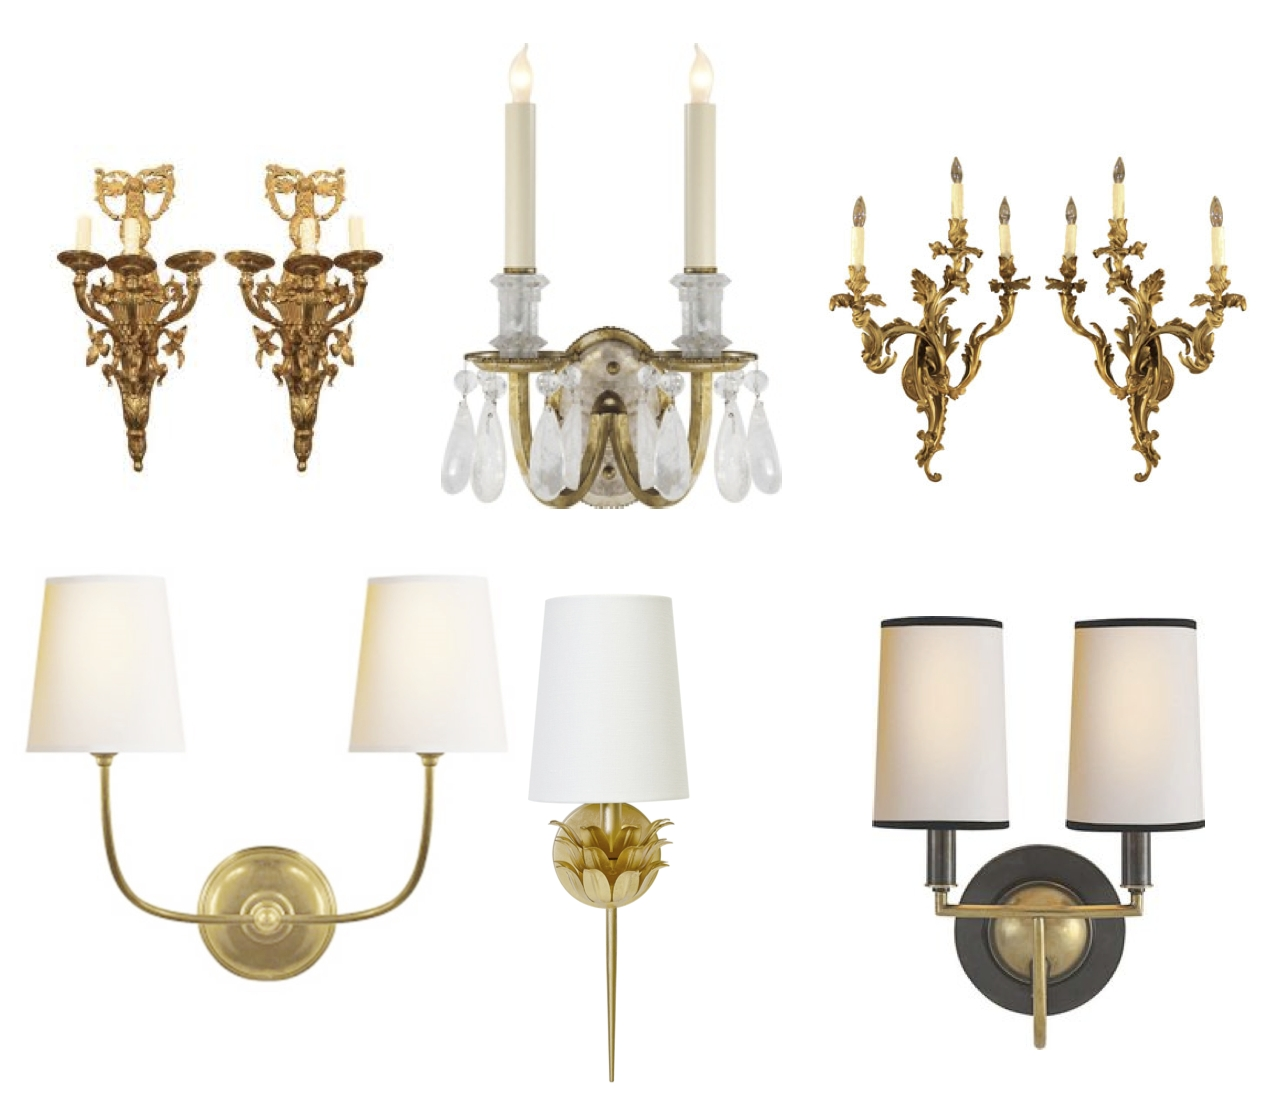 House Appeal For Wall Mounted Candle Chandeliers (View 5 of 15)